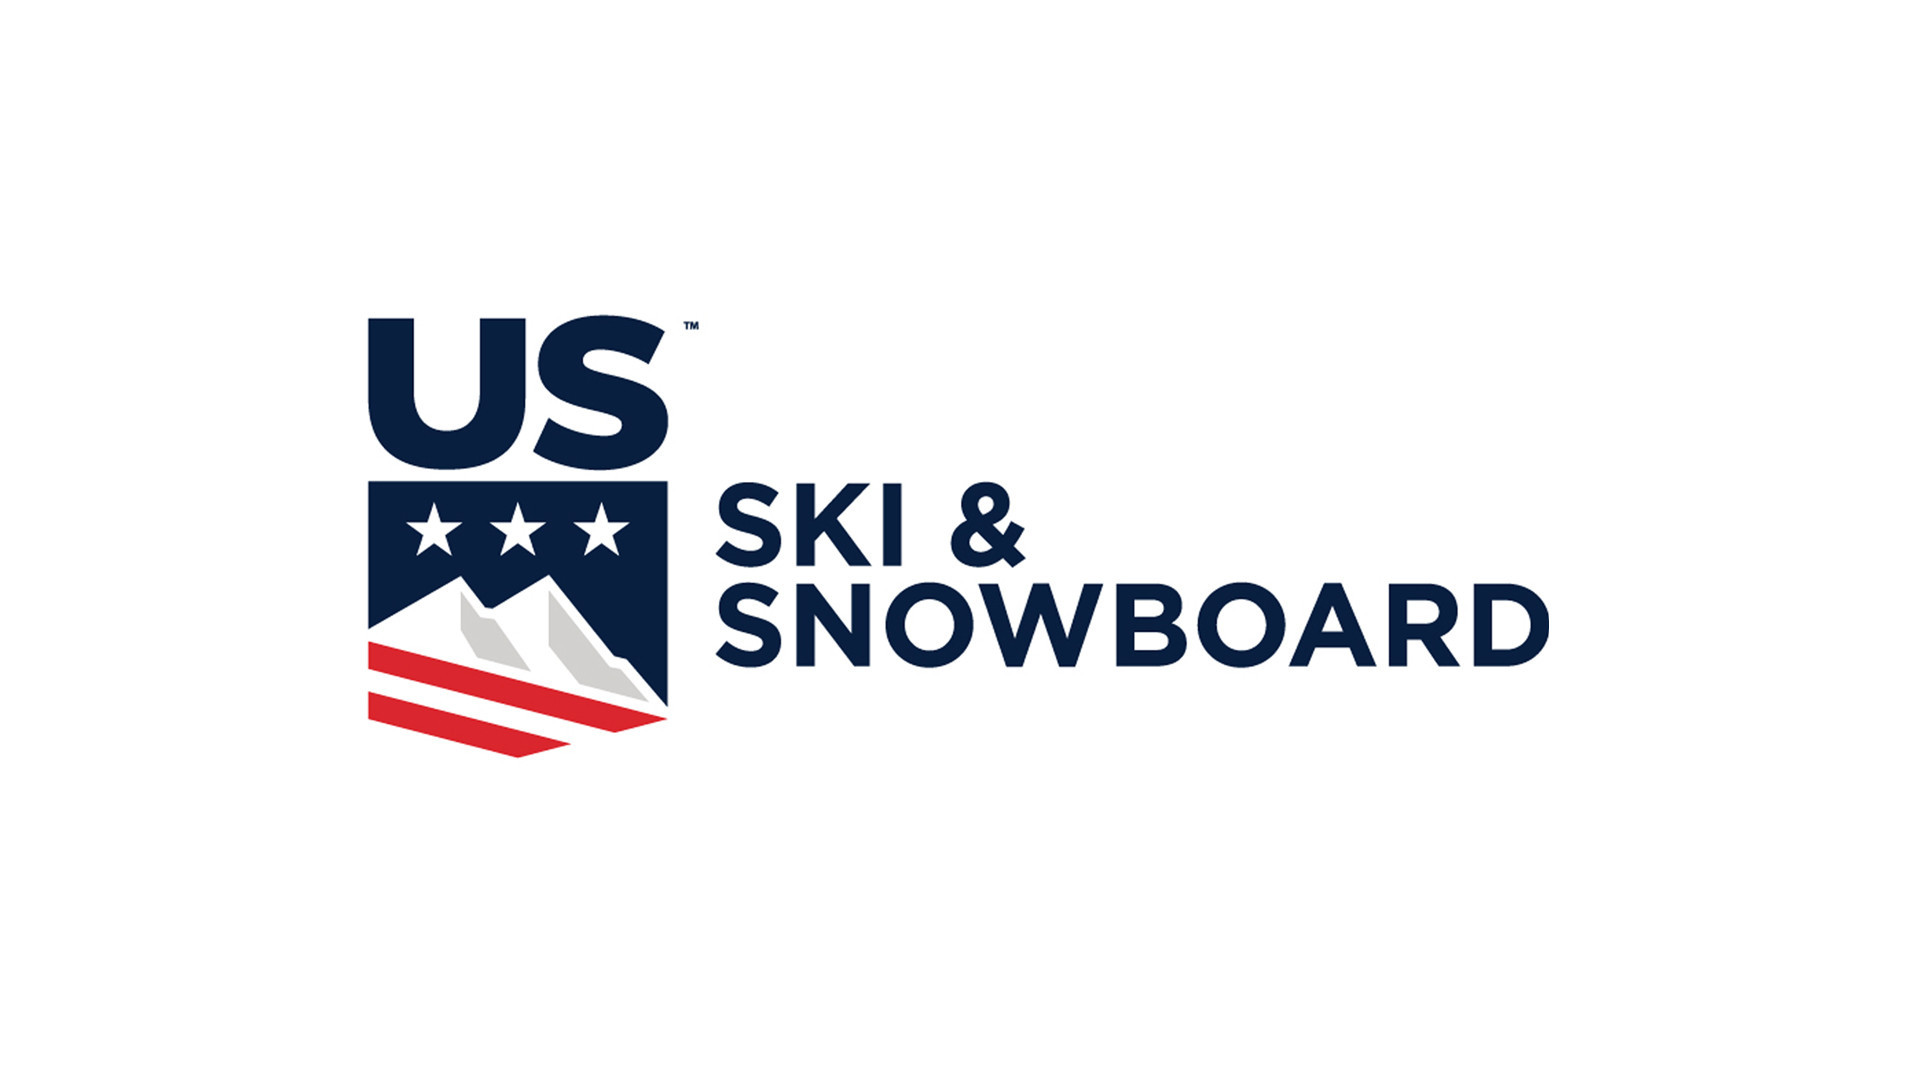 British Winter Olympian takes United States Ski and Snowboard role